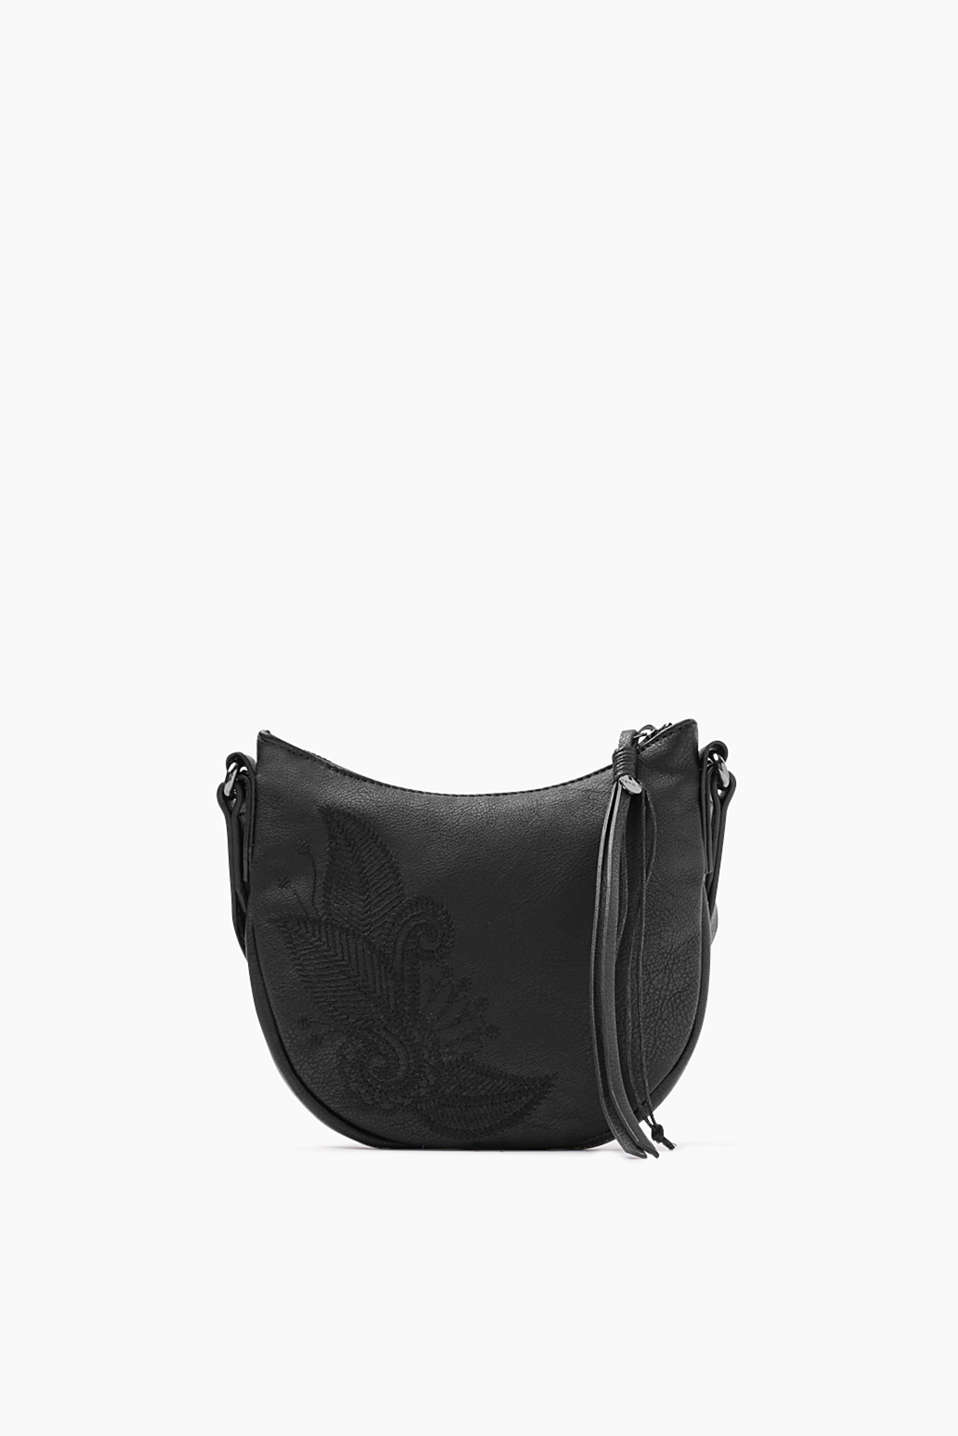 Smooth, faux leather shoulder bag with leaf-shaped, tone-in-tone stitching